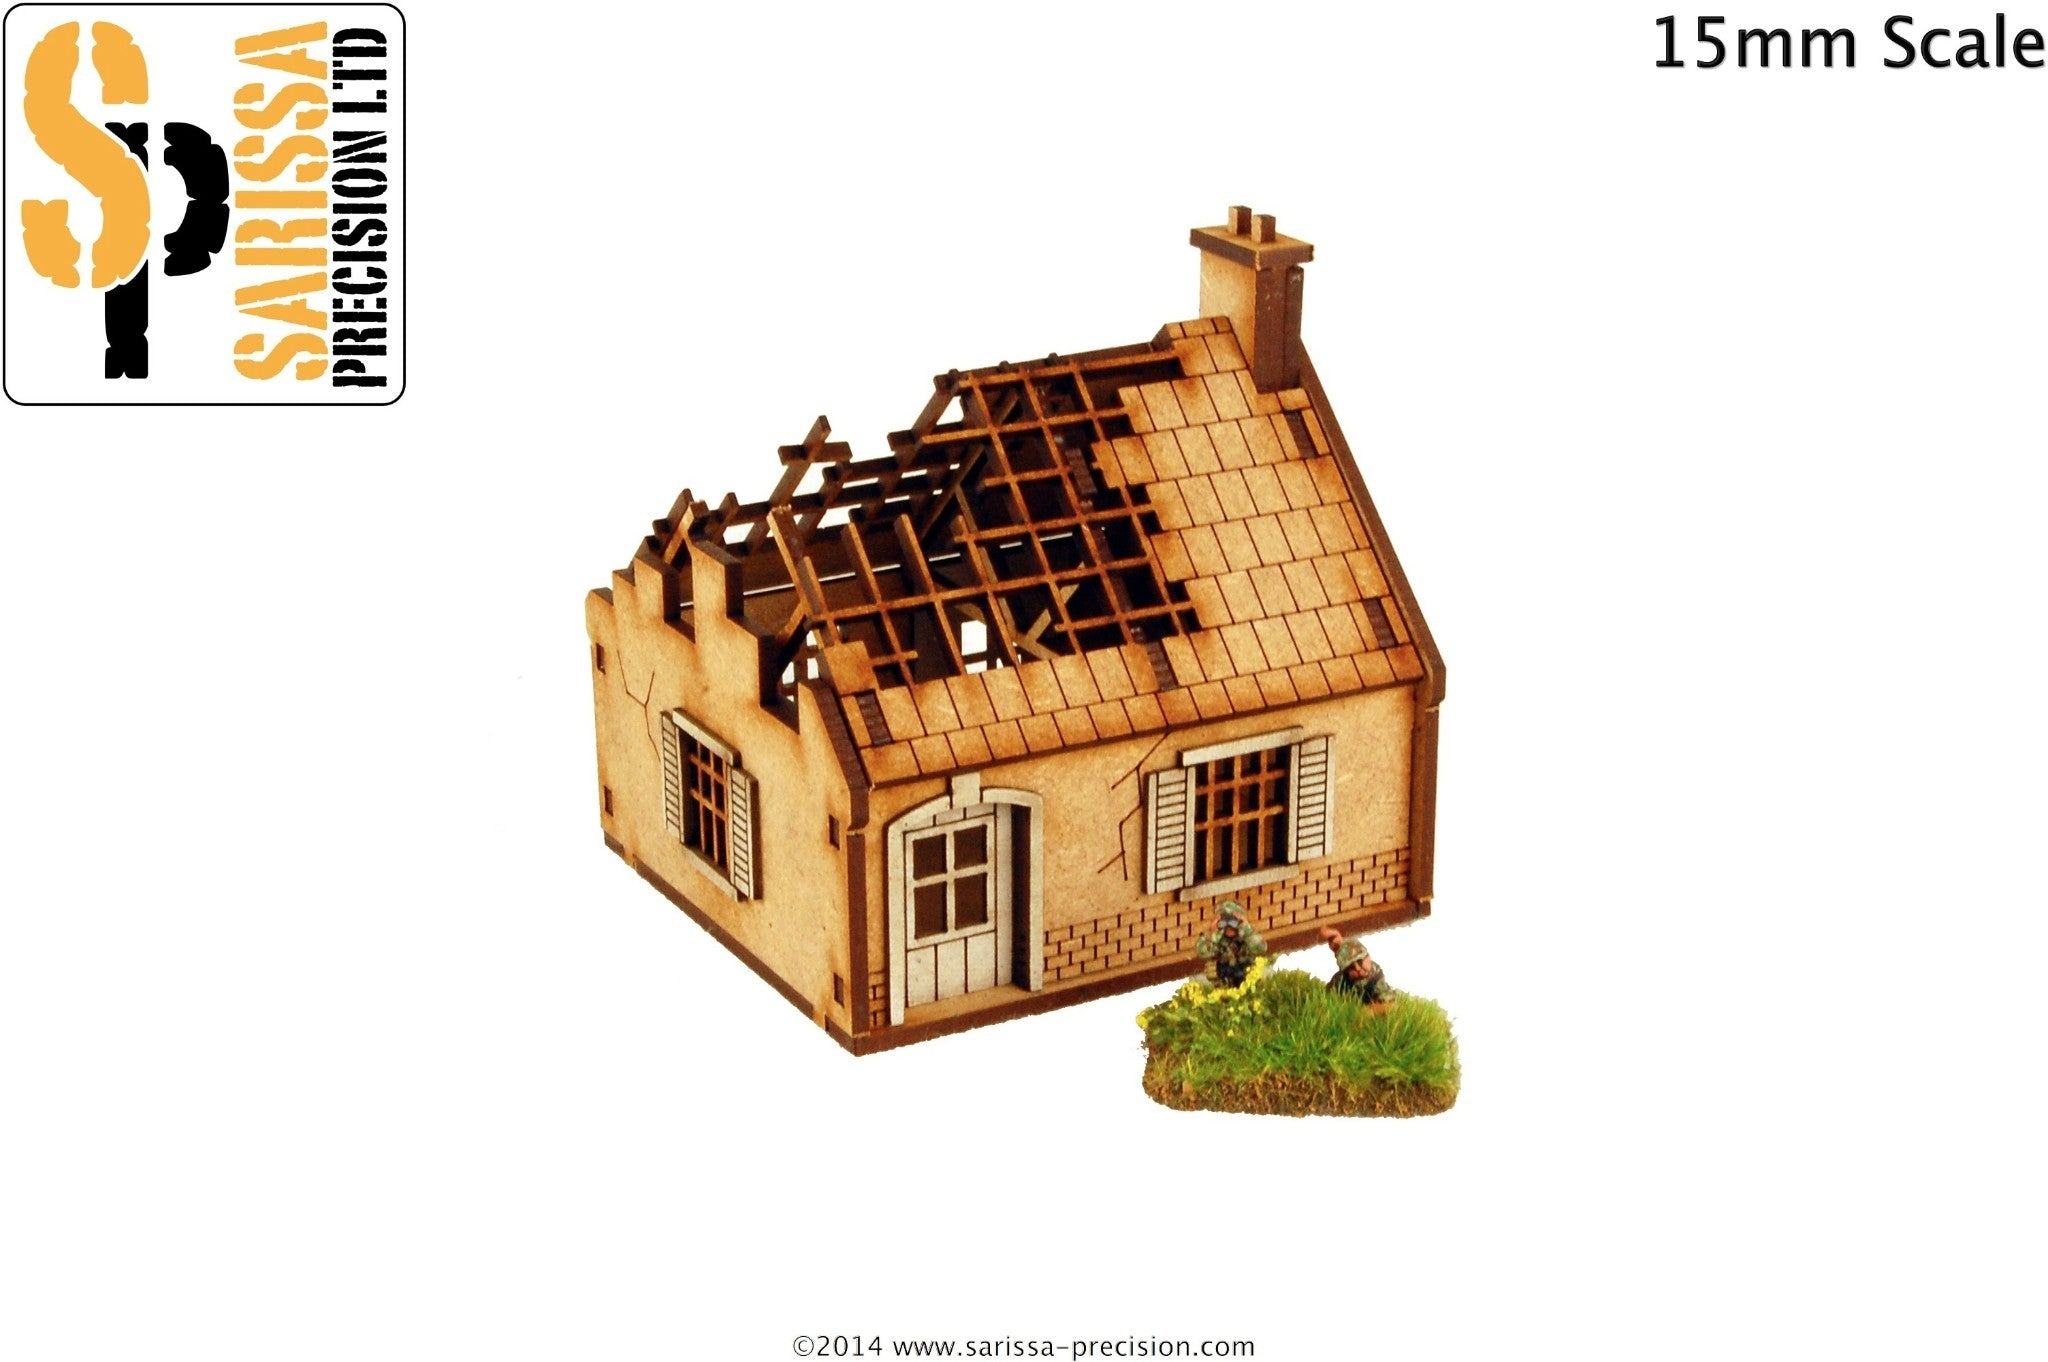 Destroyed Single-Storey House - 15mm